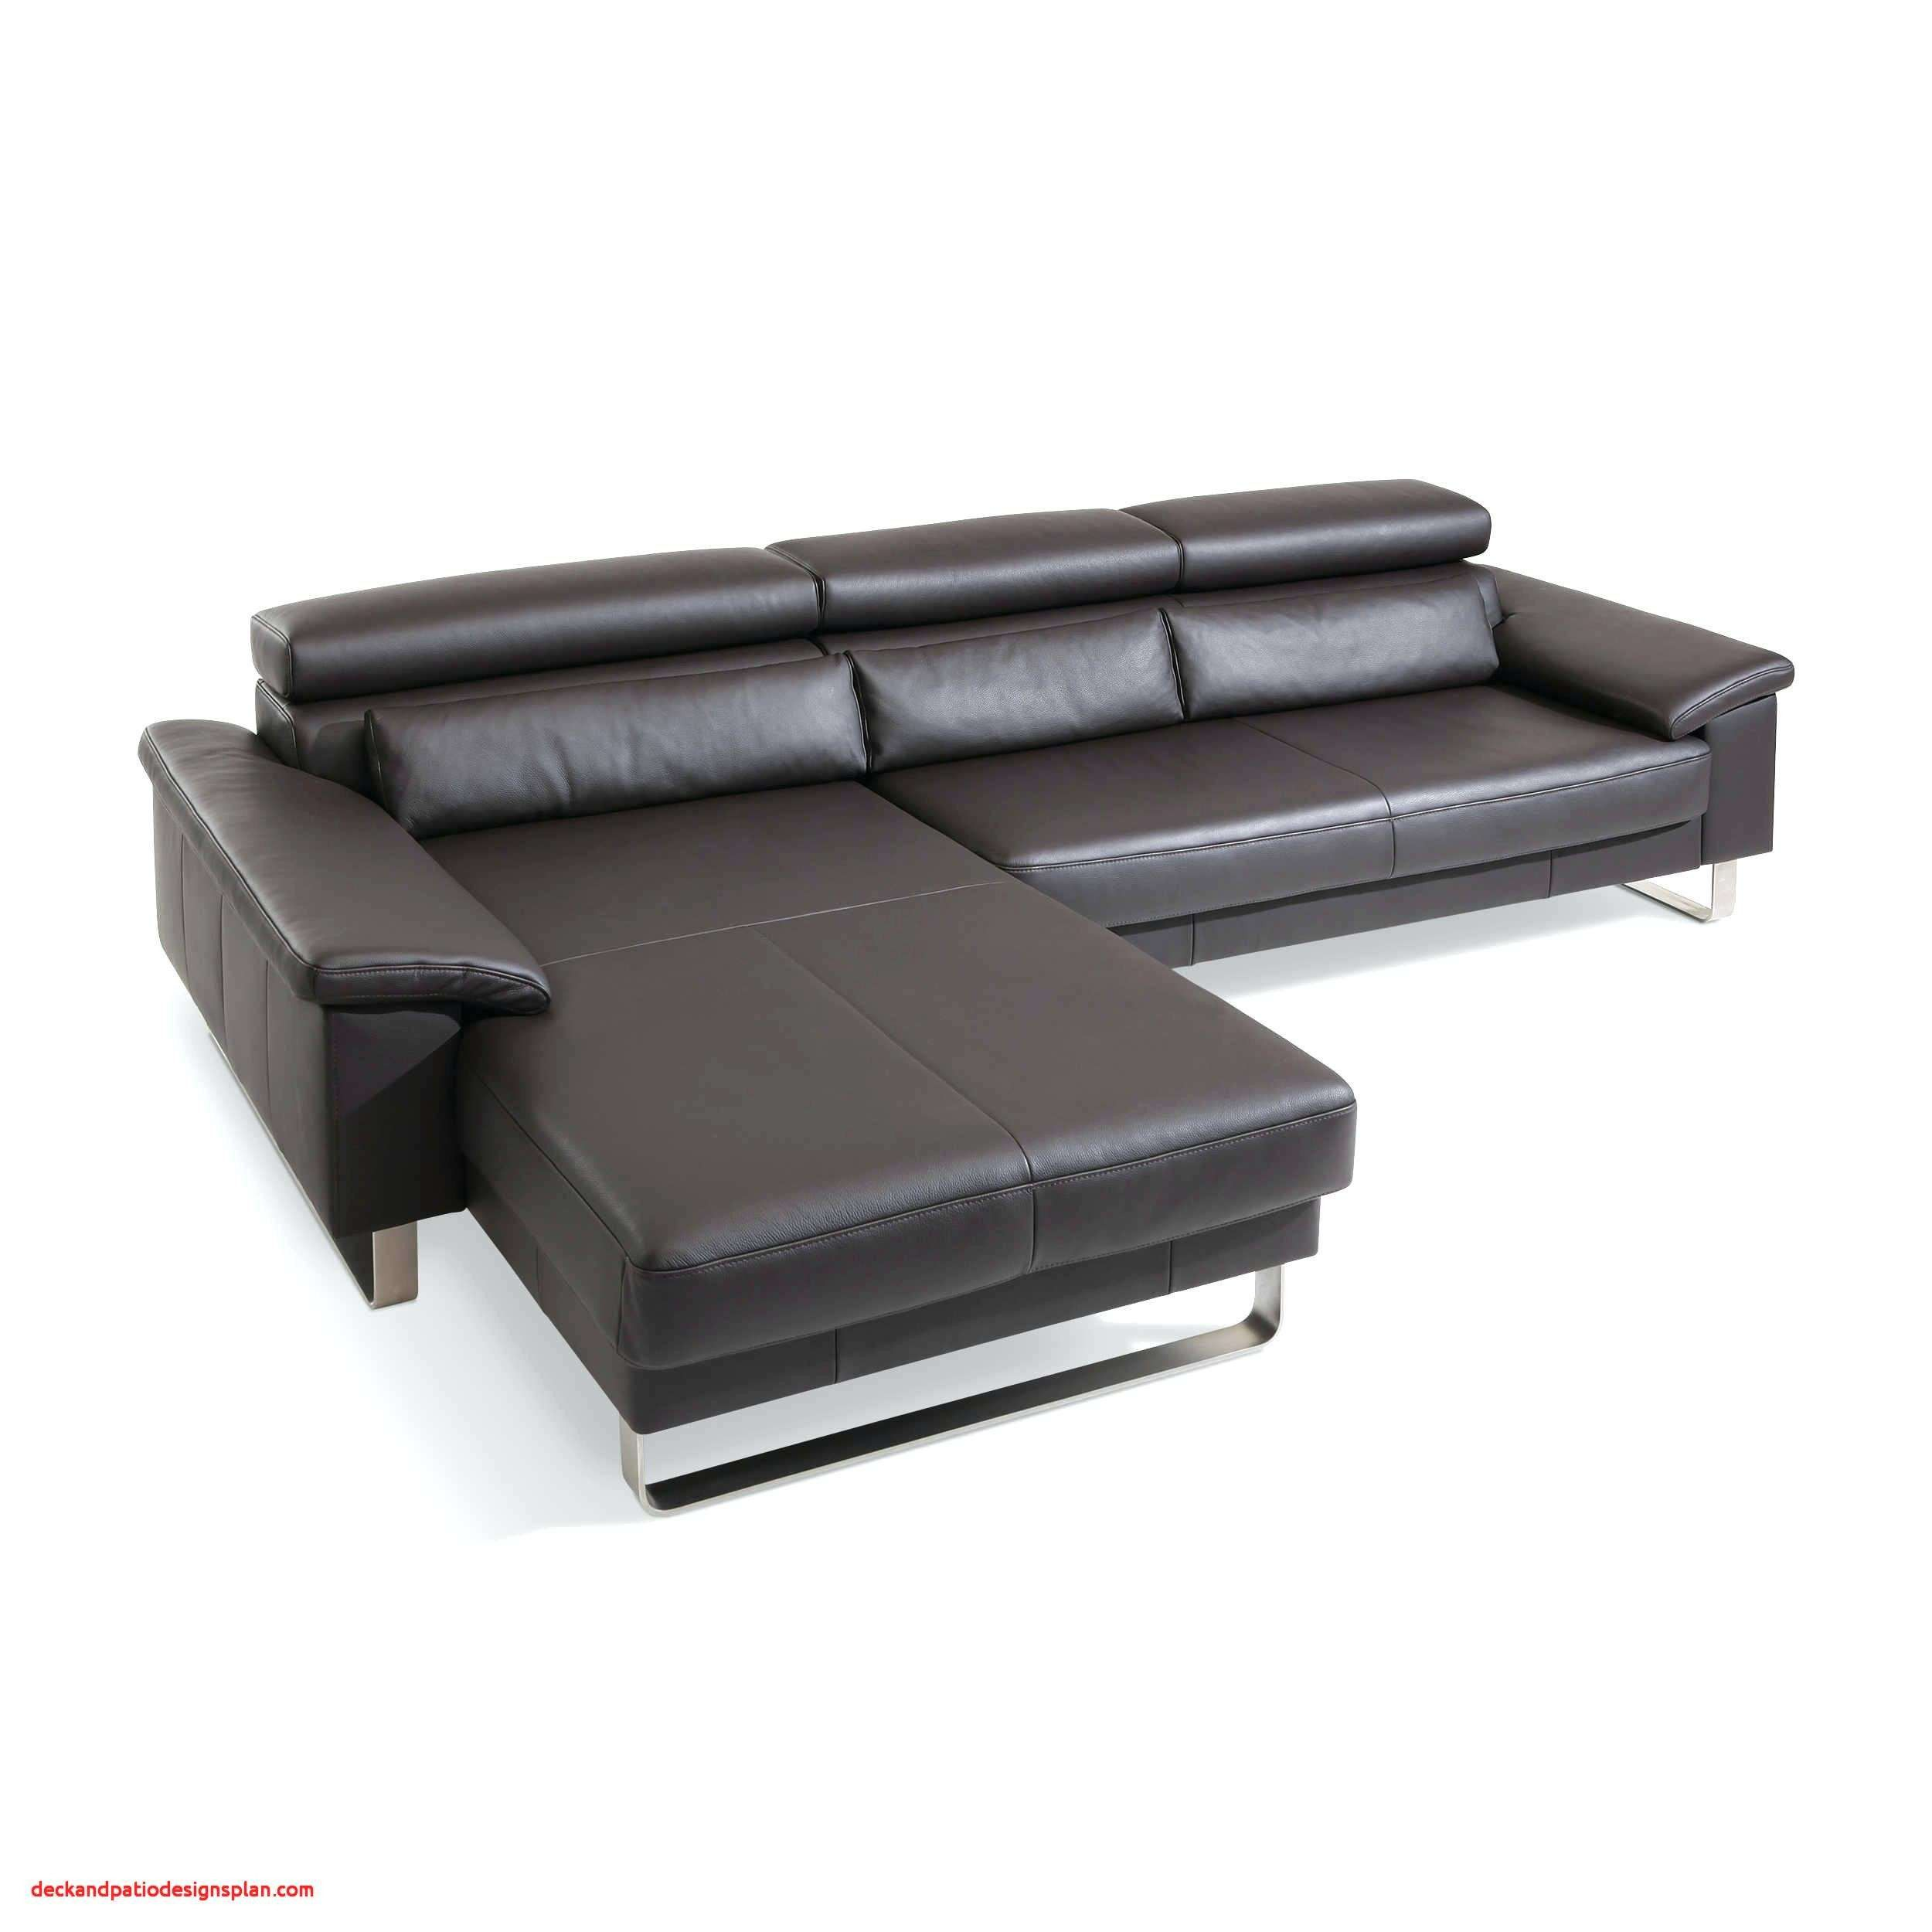 Genial Bequeme Couch Diy Furniture Bedroom Couch Small Bedroom Decor